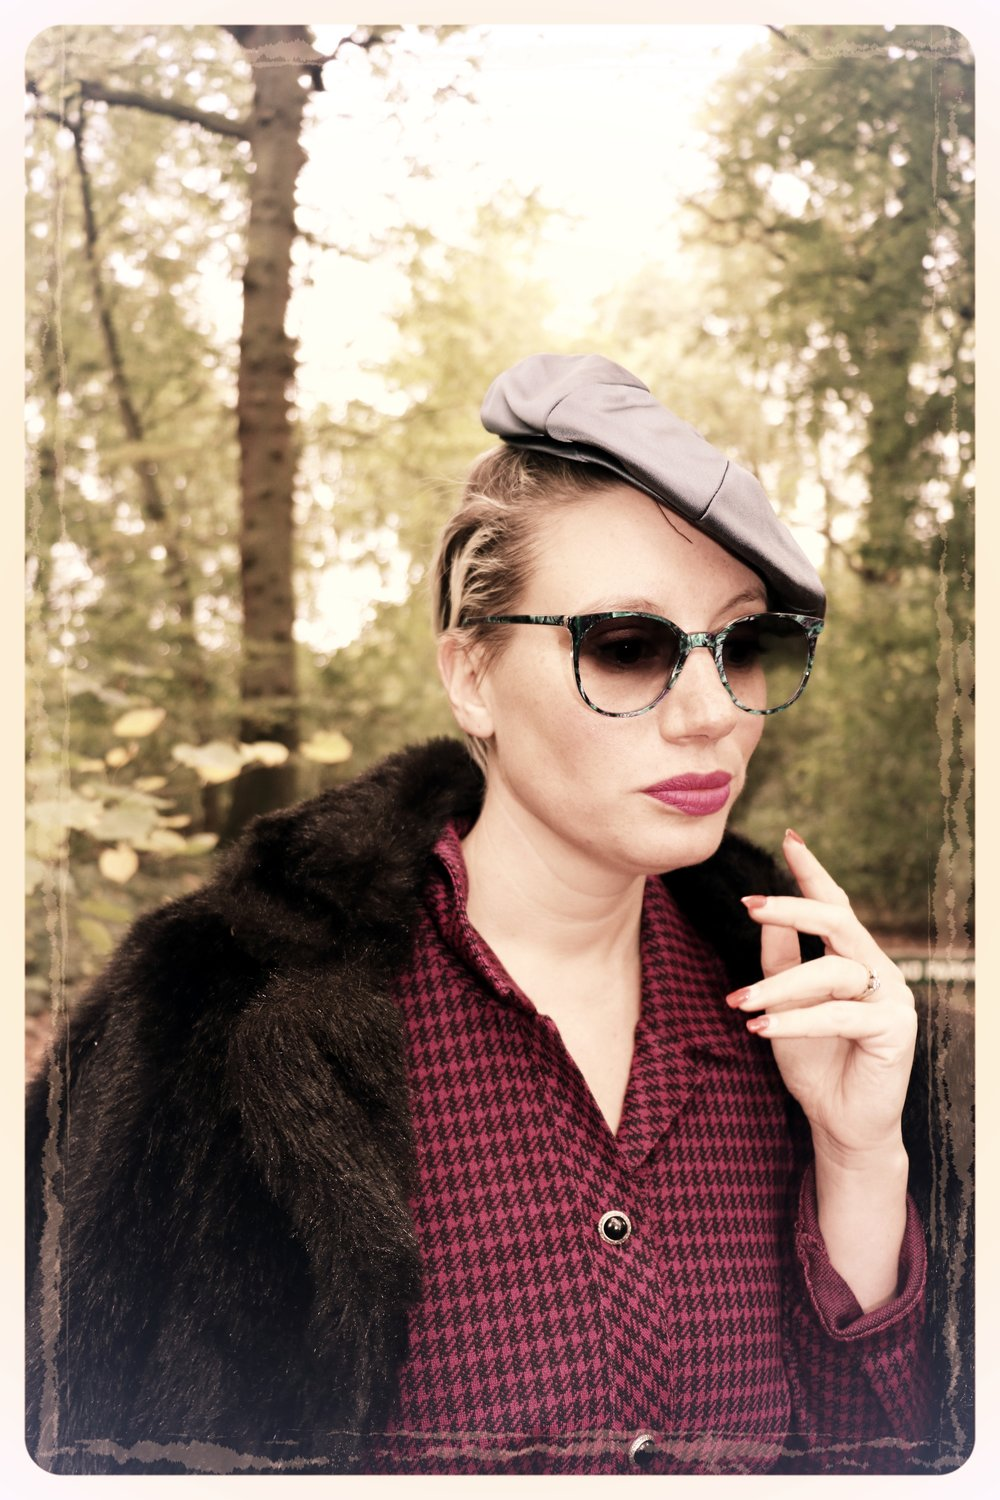 Peep Eyewear, Vintage Sunglasses, 1970s, Shore being worn in fur coat in woods, Autumn Winter Collection